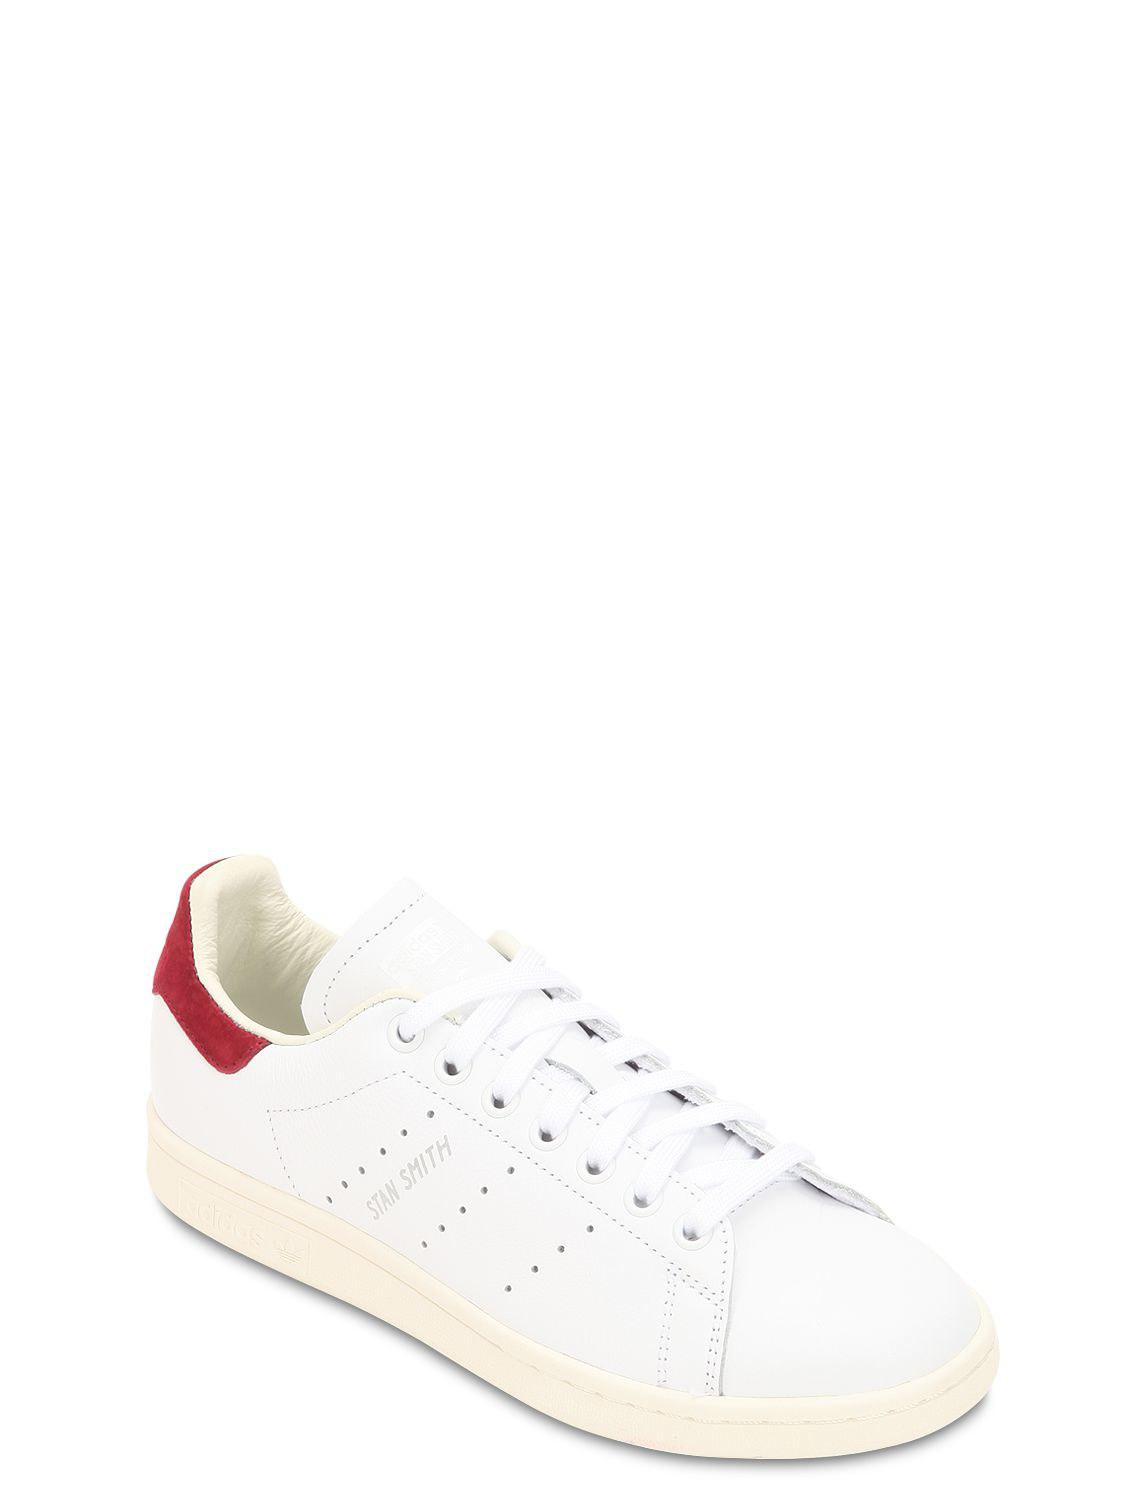 size 40 cf70f 08ae1 ... coupon for adidas originals white stan smith leather sneakers lyst.  view fullscreen 6ead3 eaf1f